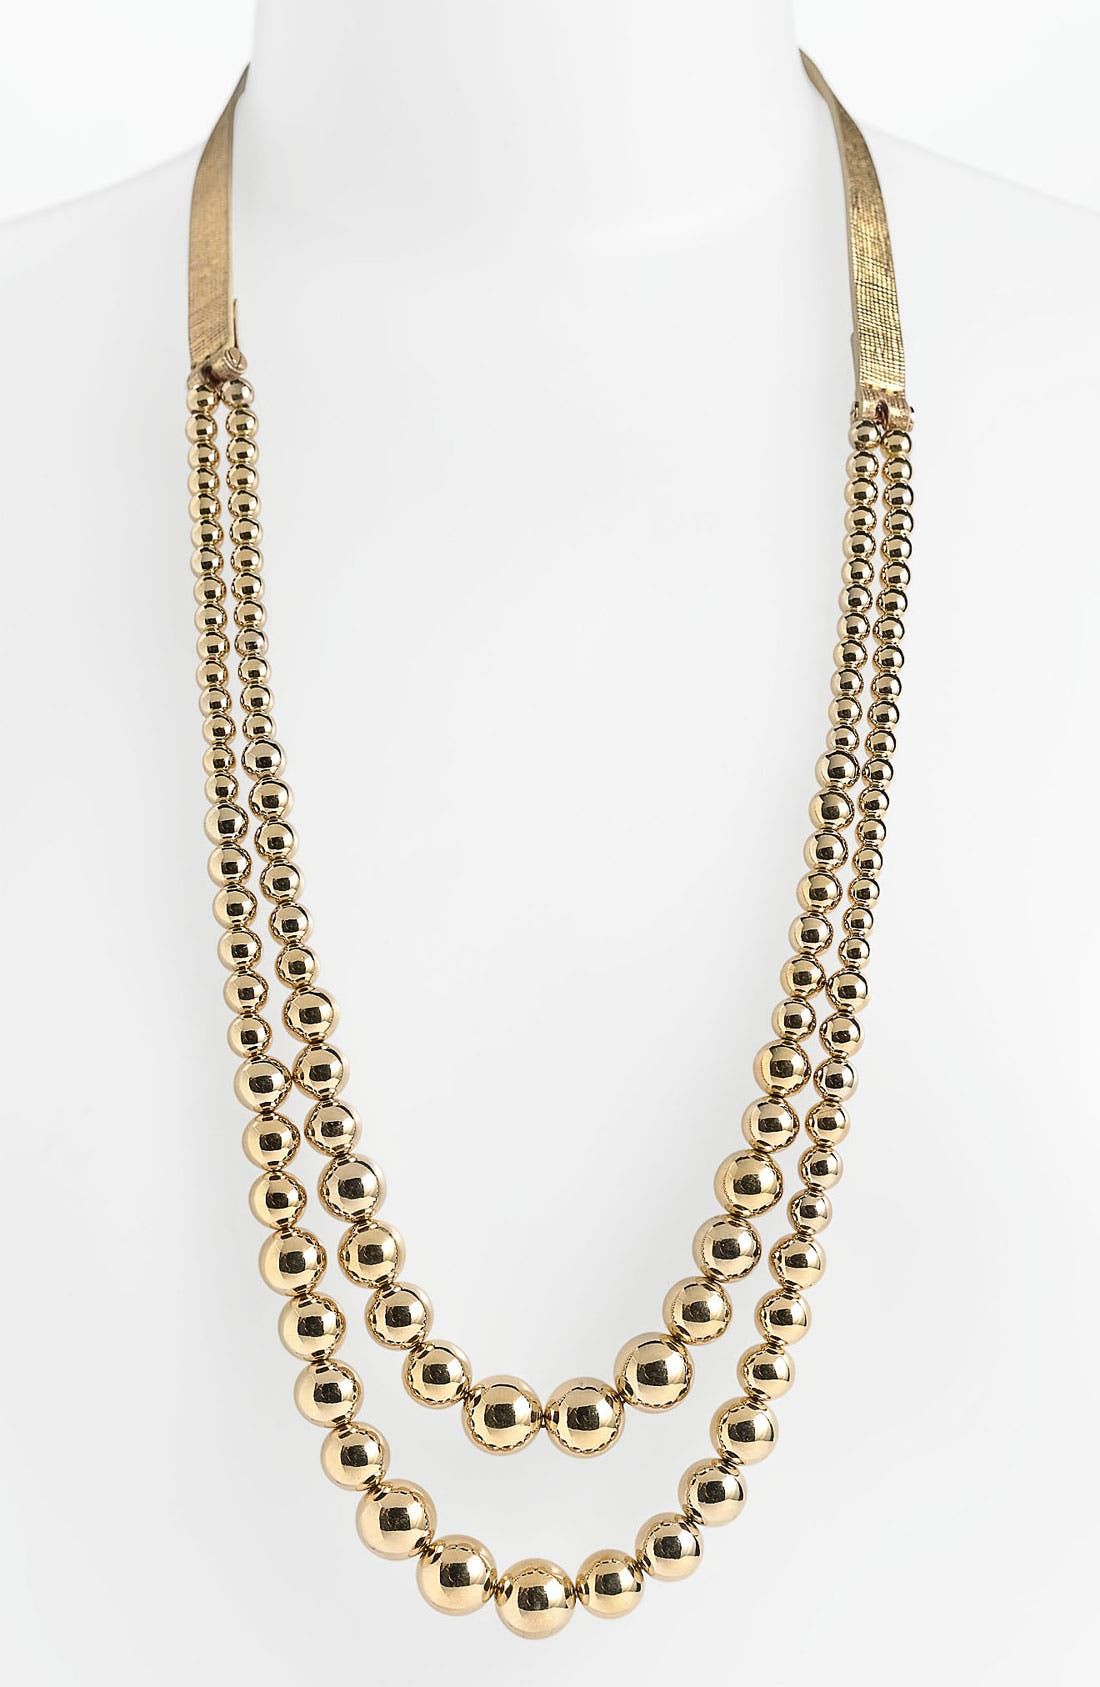 Main Image - Michael Kors Leather & Bead Necklace